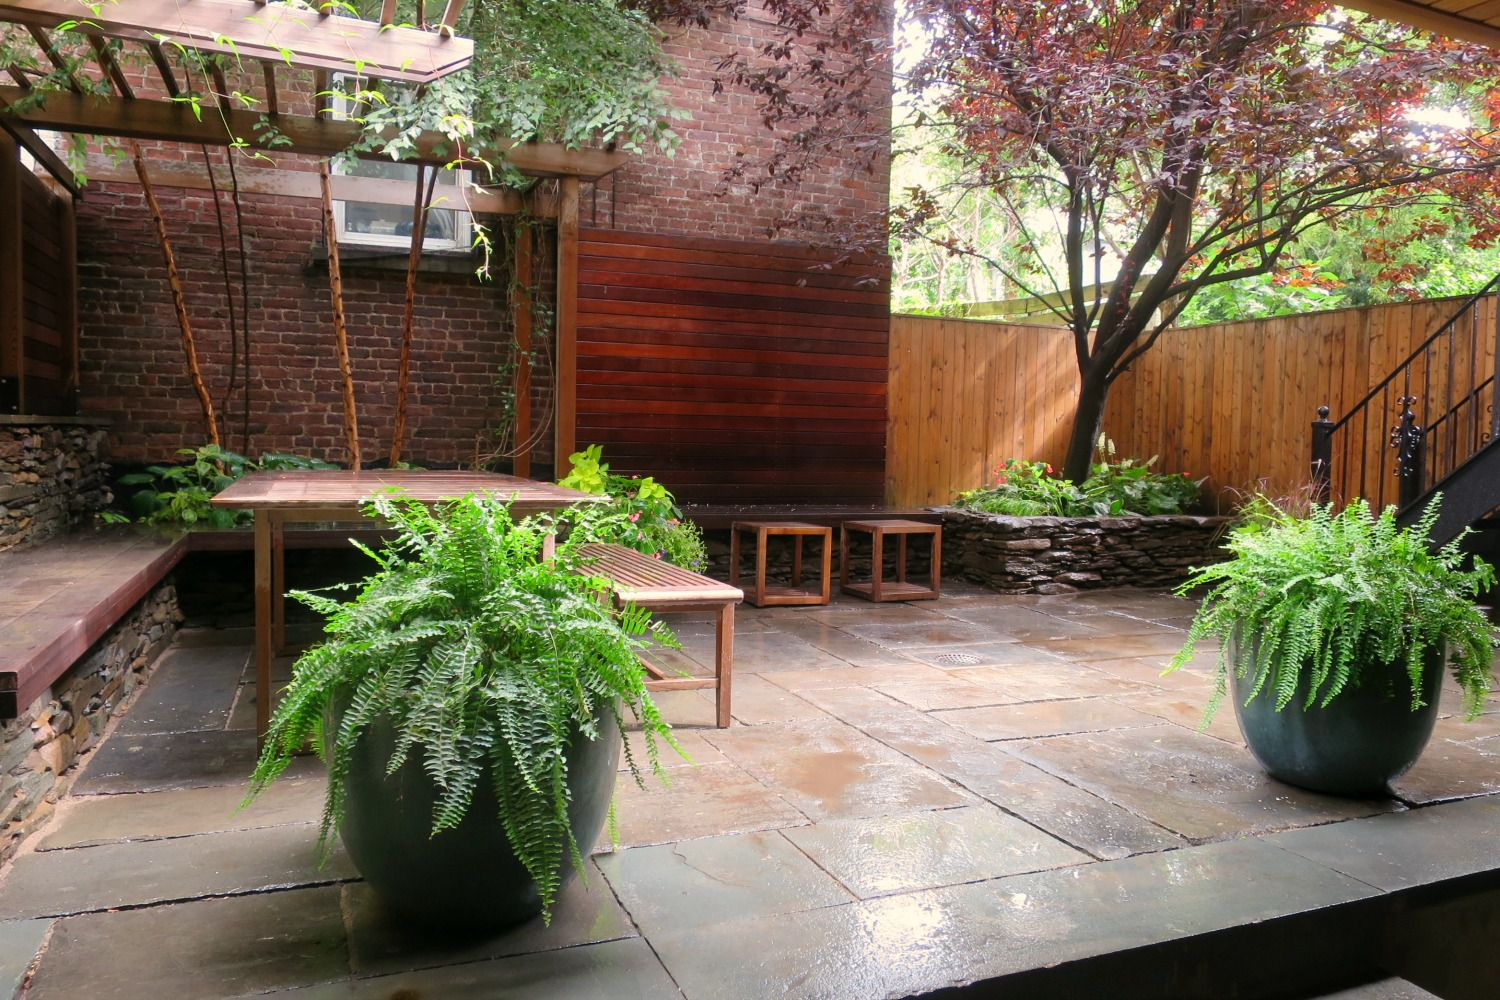 50 Backyard Landscaping Ideas To Inspire You with regard to Backyard Landscapes